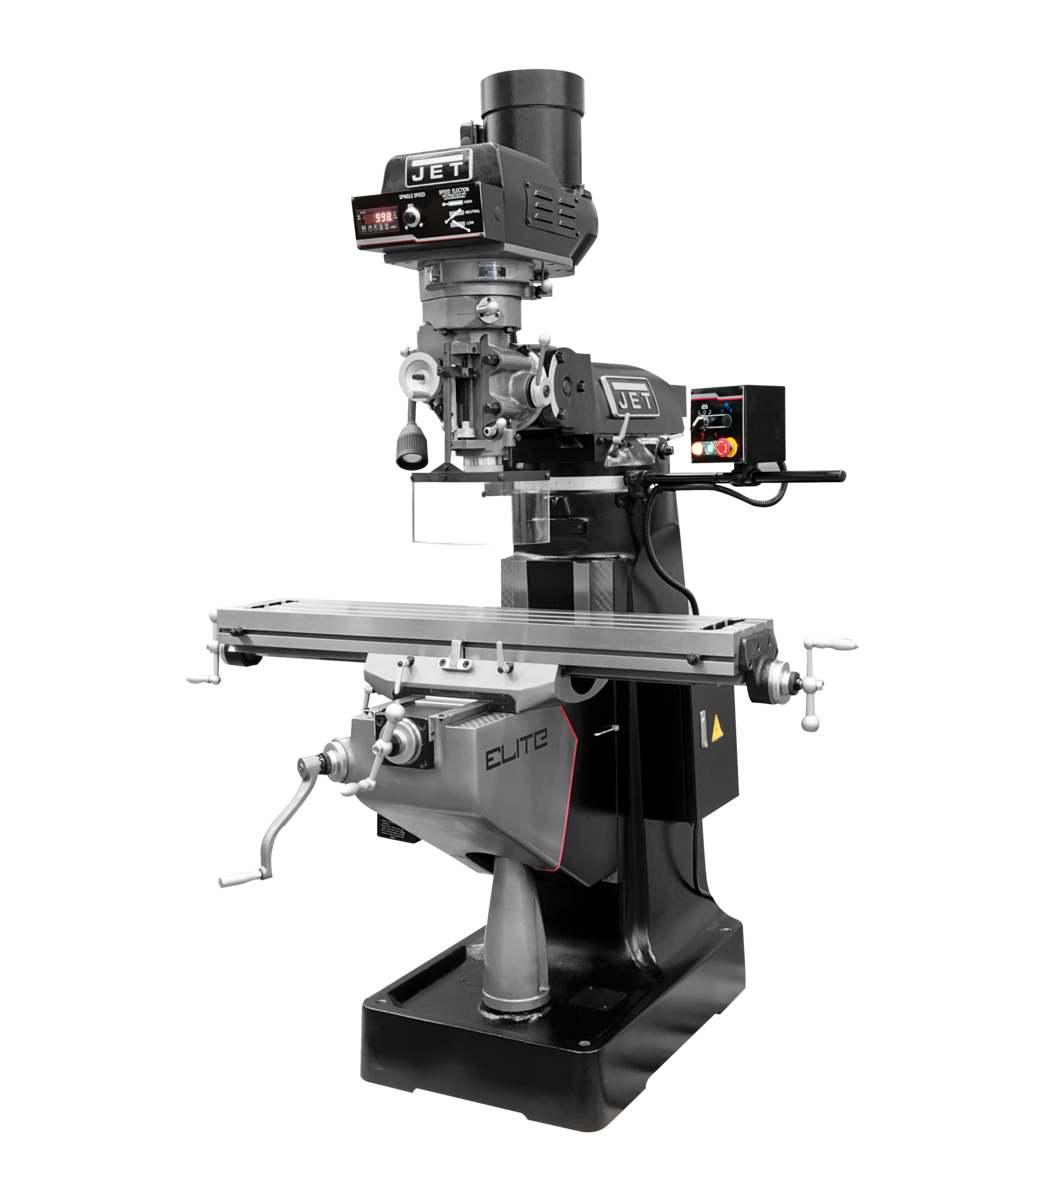 EVS-949 Mill with 2-Axis Newall DP700 DRO and X, Y-Axis JET Powerfeeds